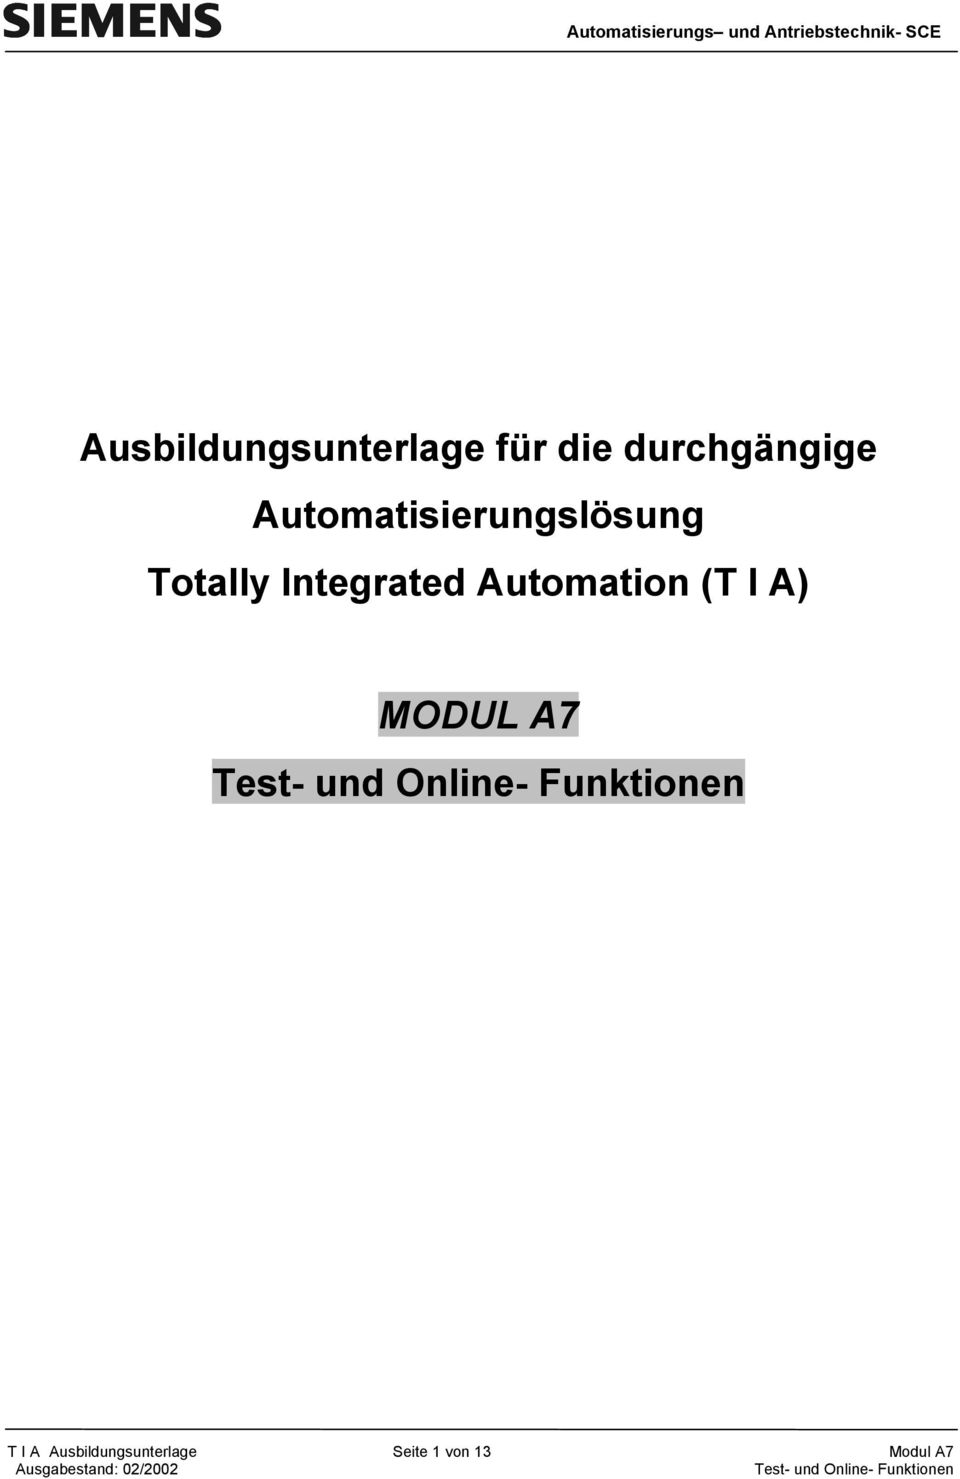 Totally Integrated Automation (T I A)